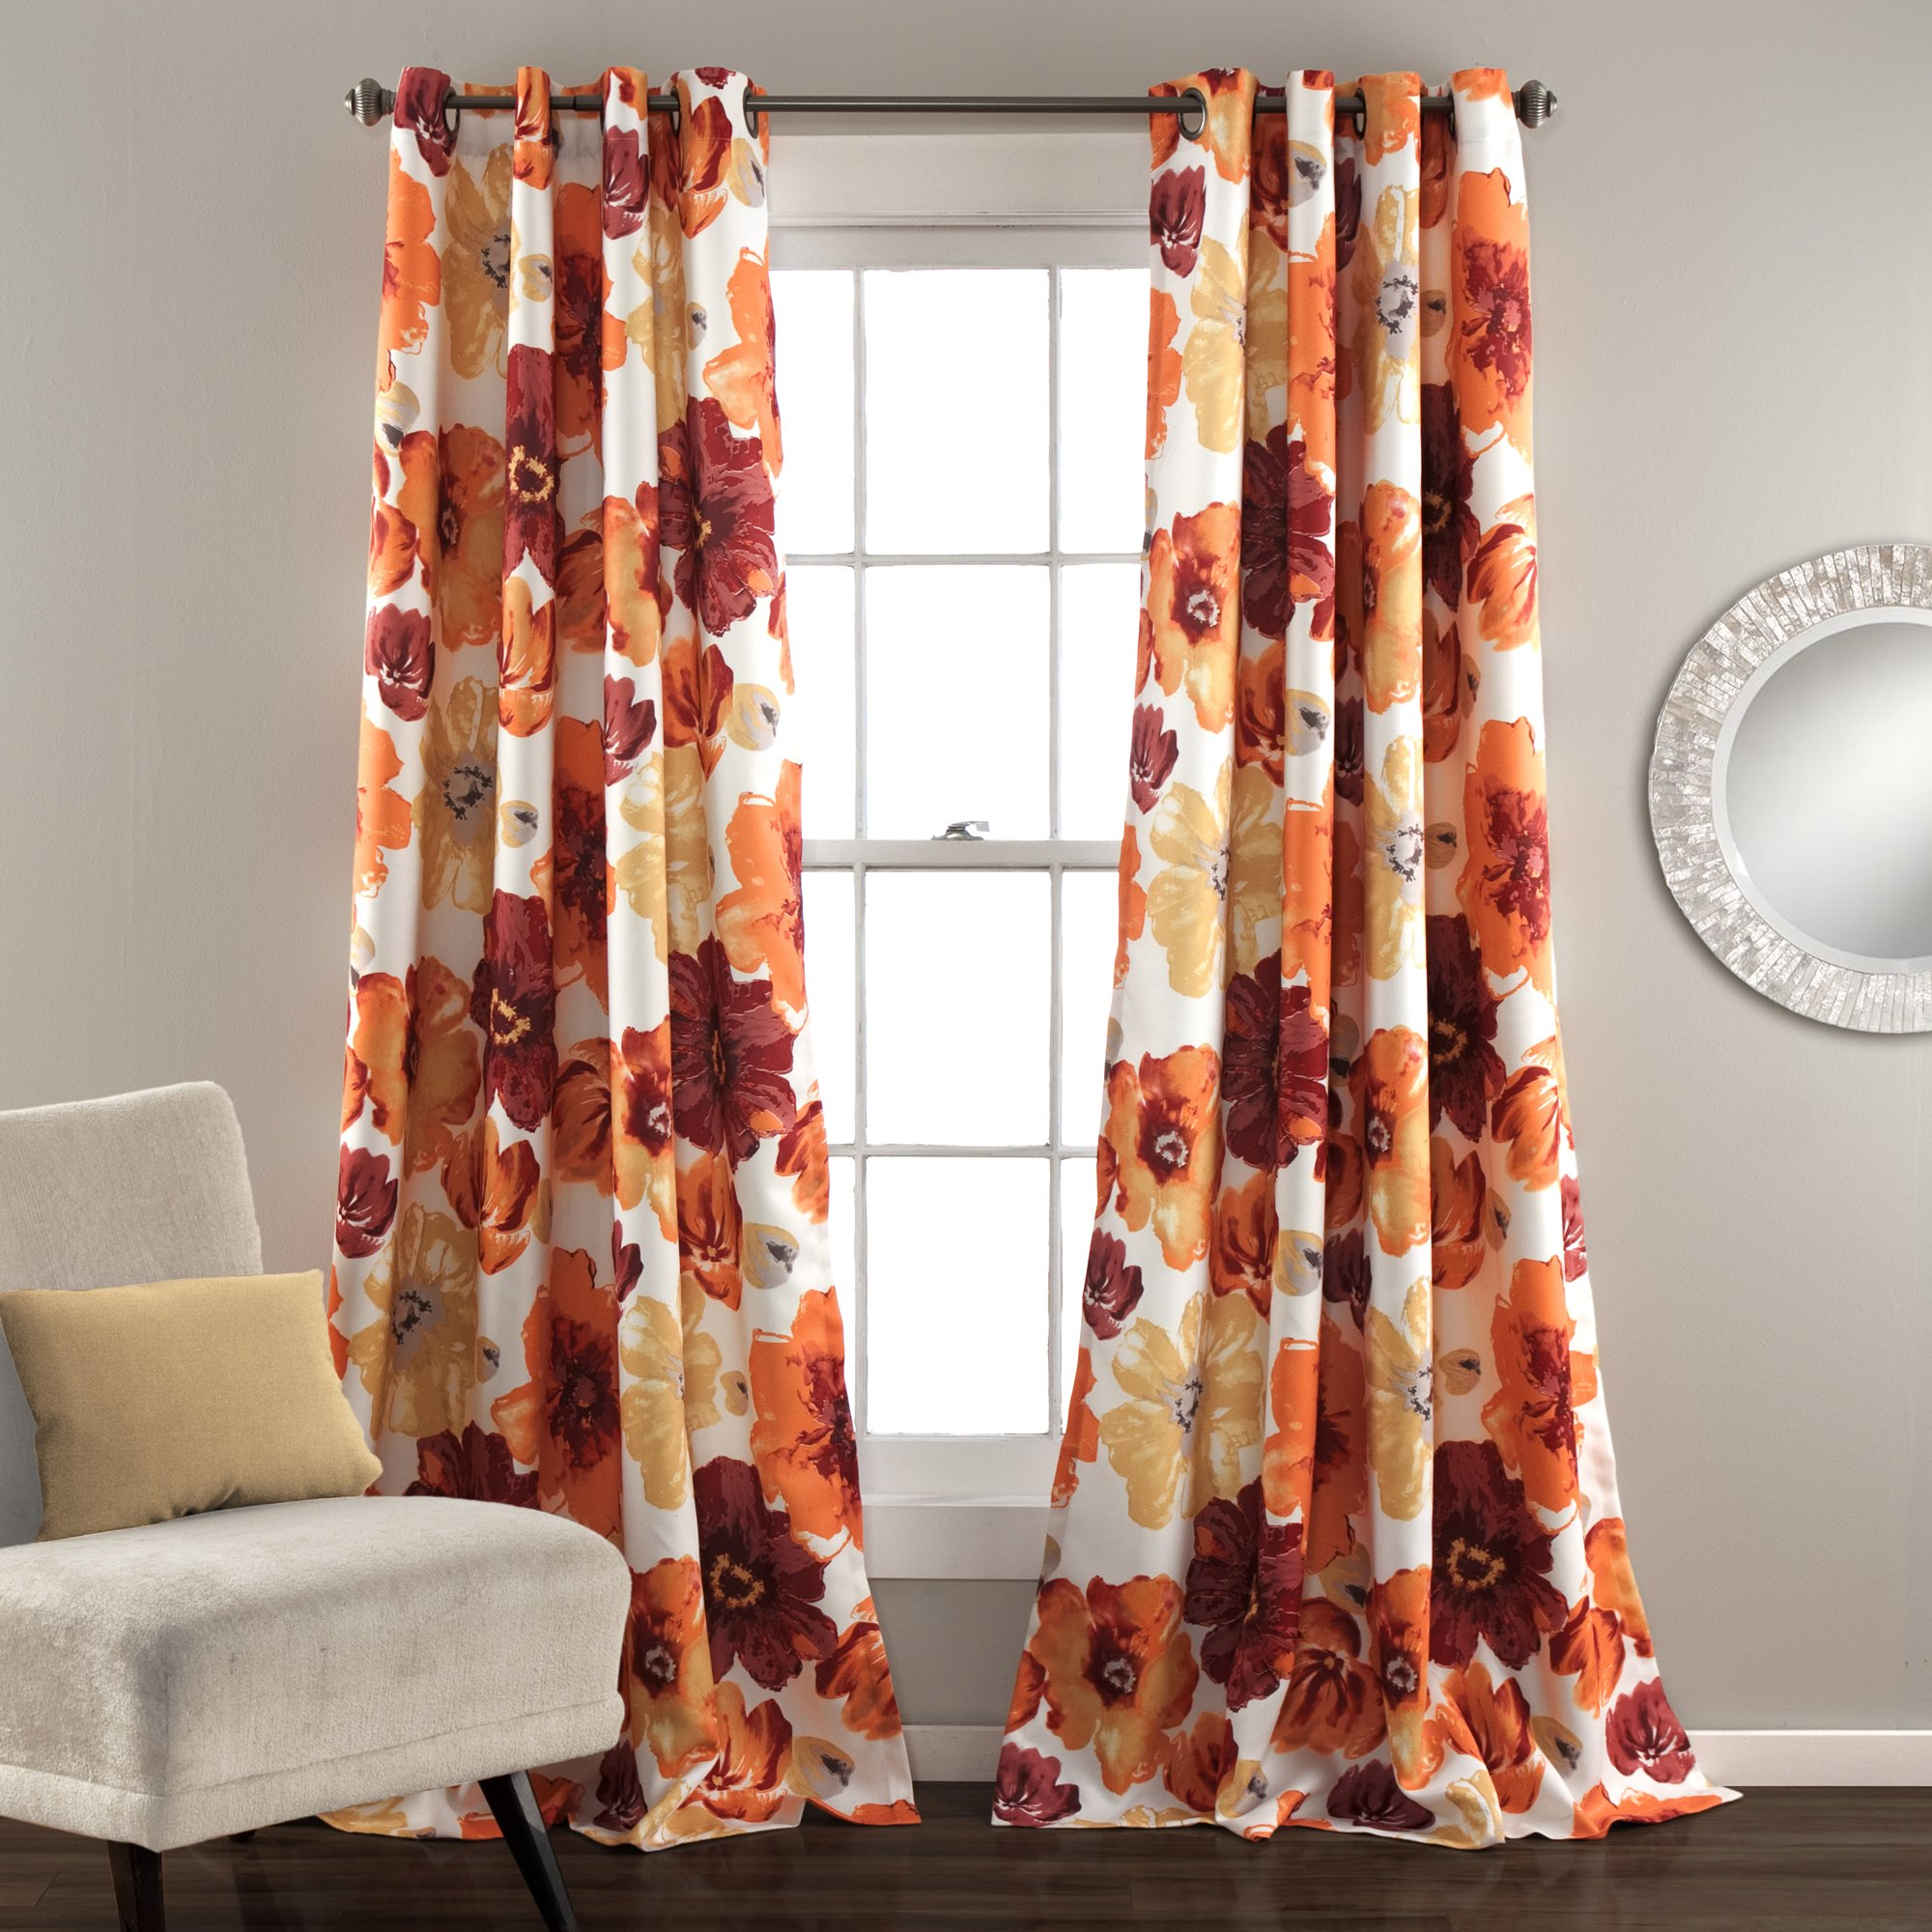 Leah Room Darkening Window Curtain Set Room Darkening Room